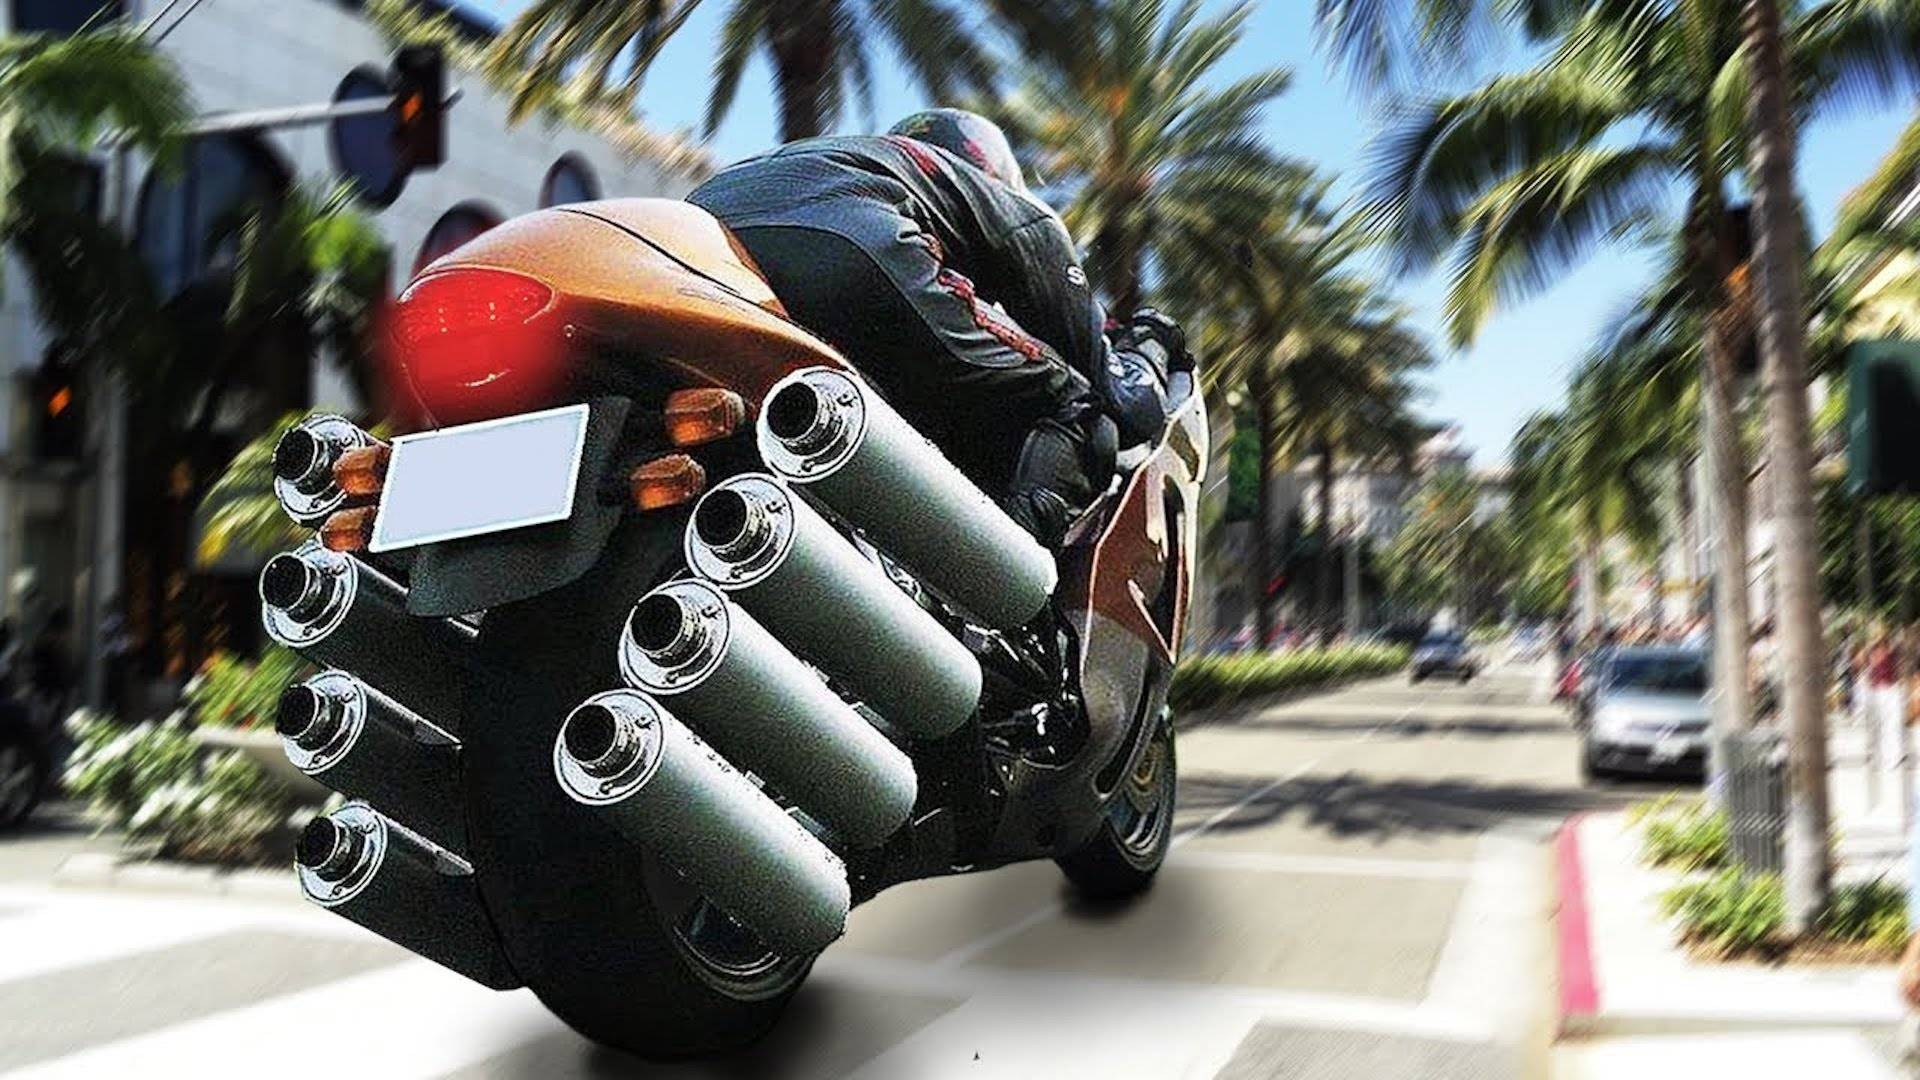 Ask RideApart about After Market Exhaust Systems